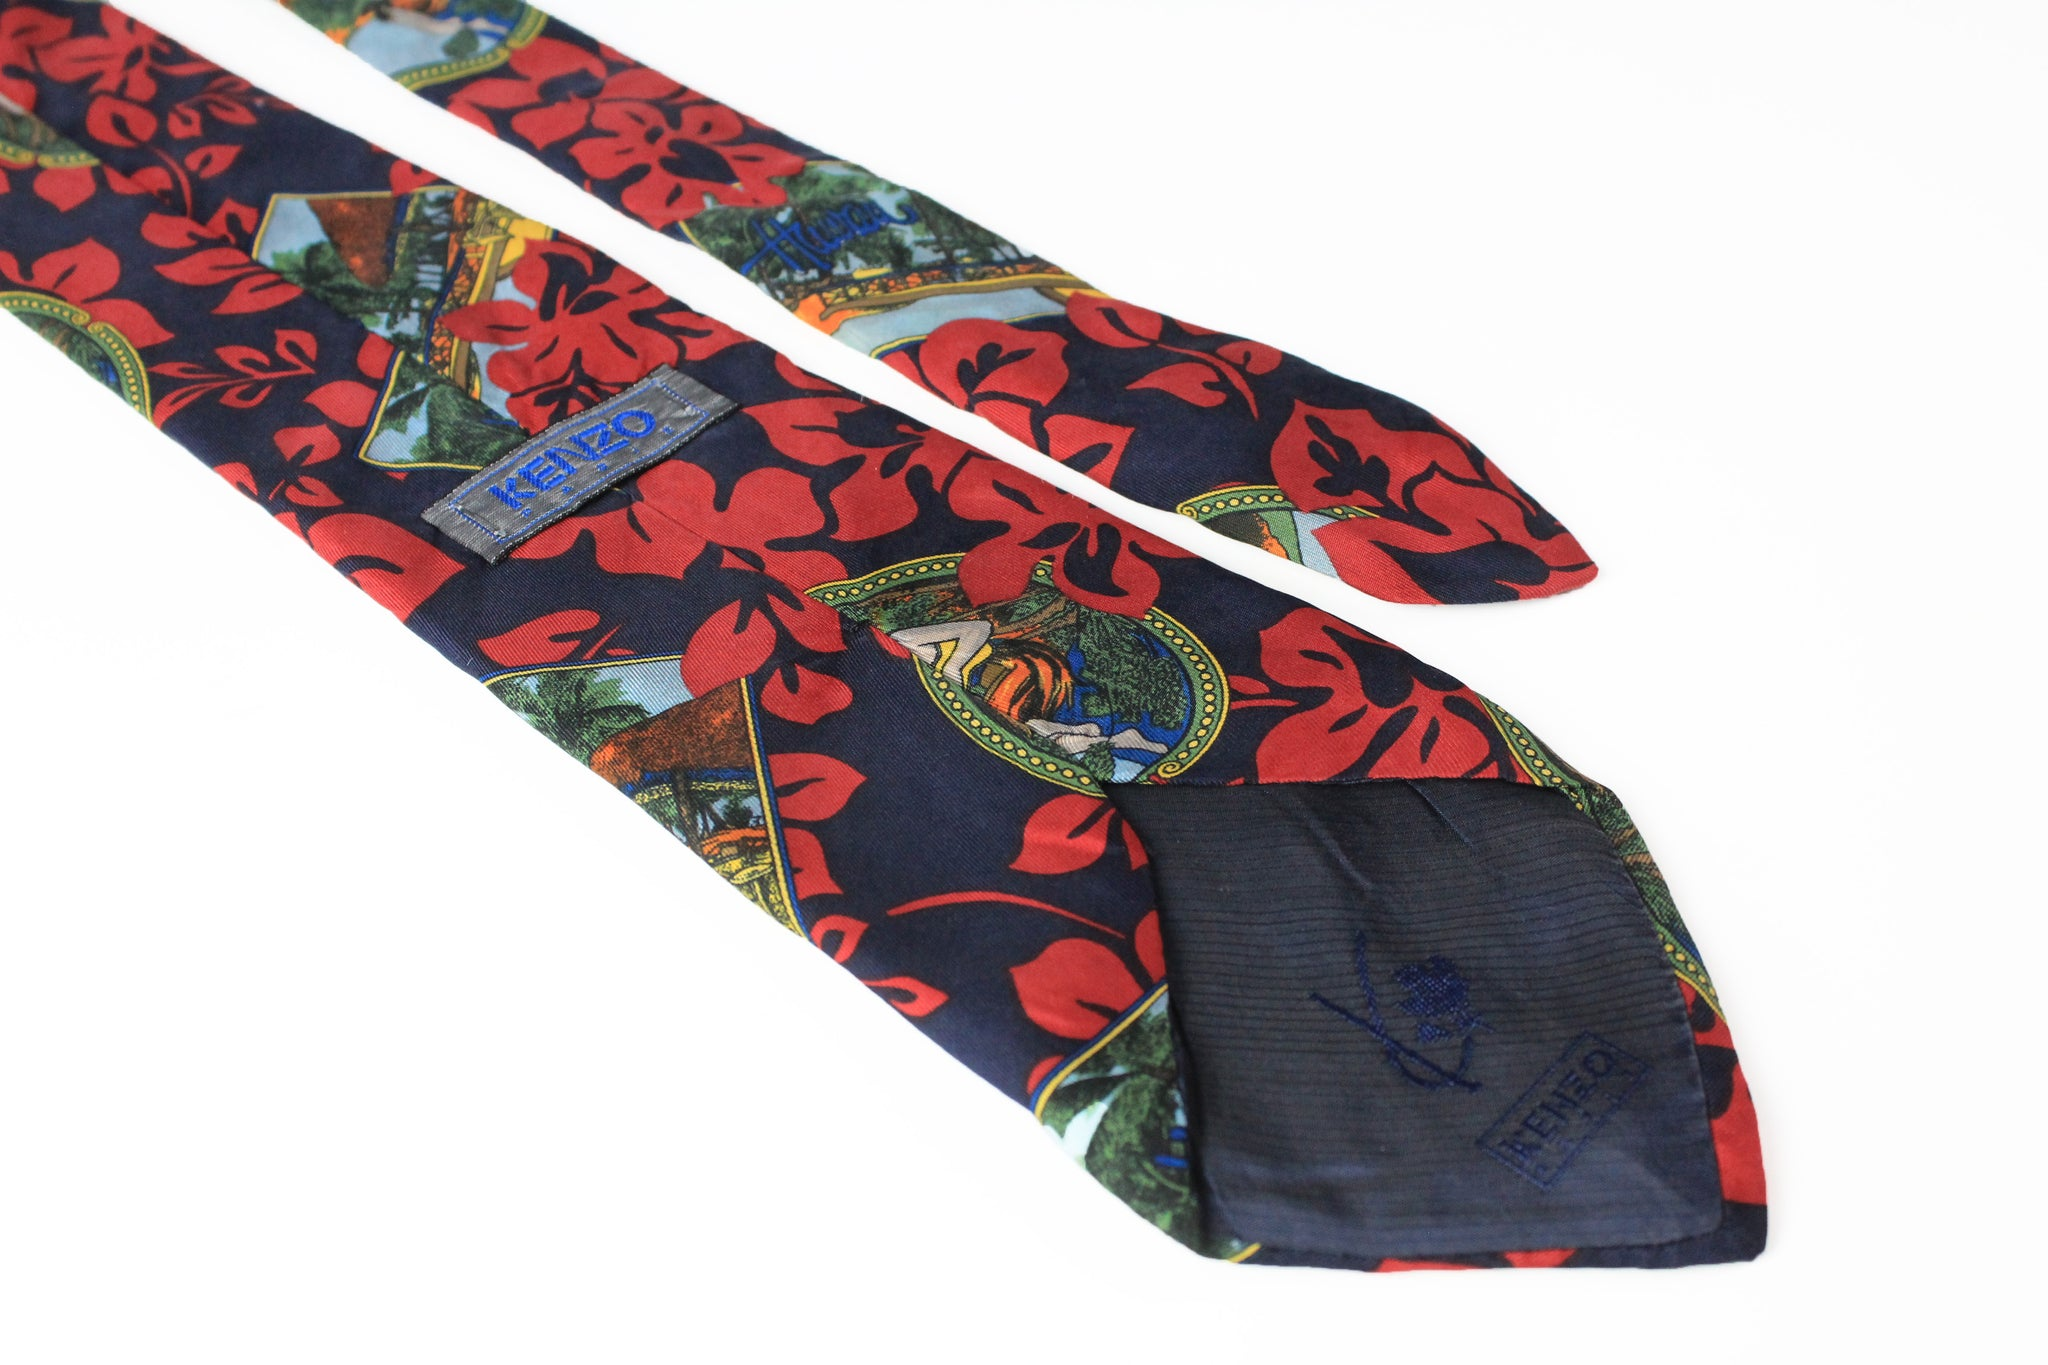 Vintage Kenzo Tie abstract pattern landscape 90s silk